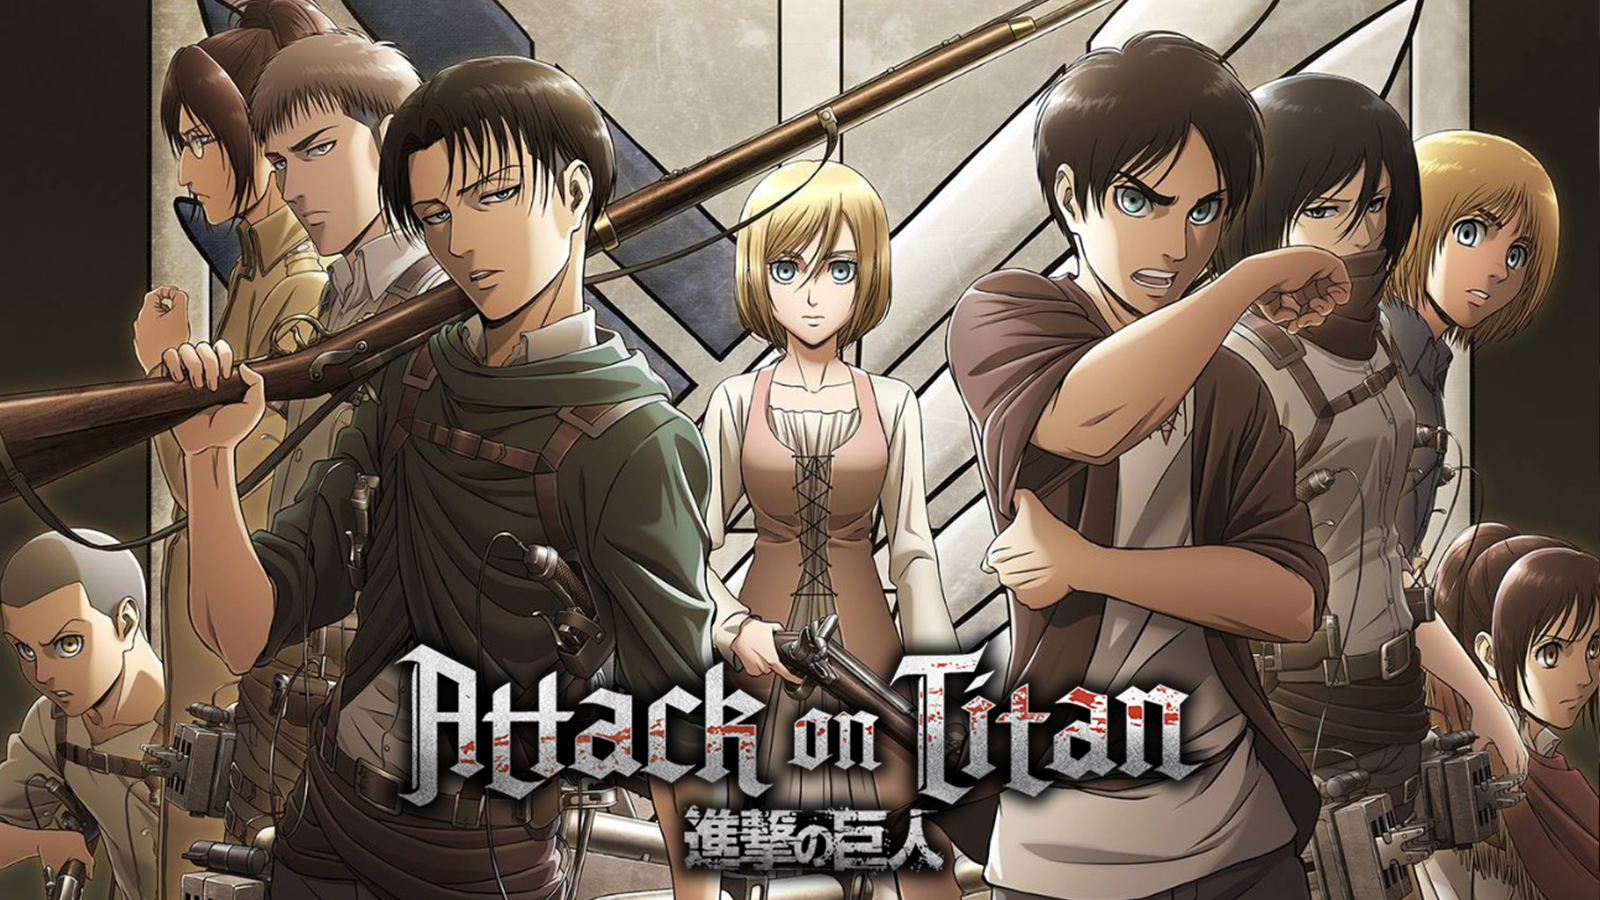 Attack On Titan Season 4 Trailer Gives First Look At Humanity S Final Battle Dexerto